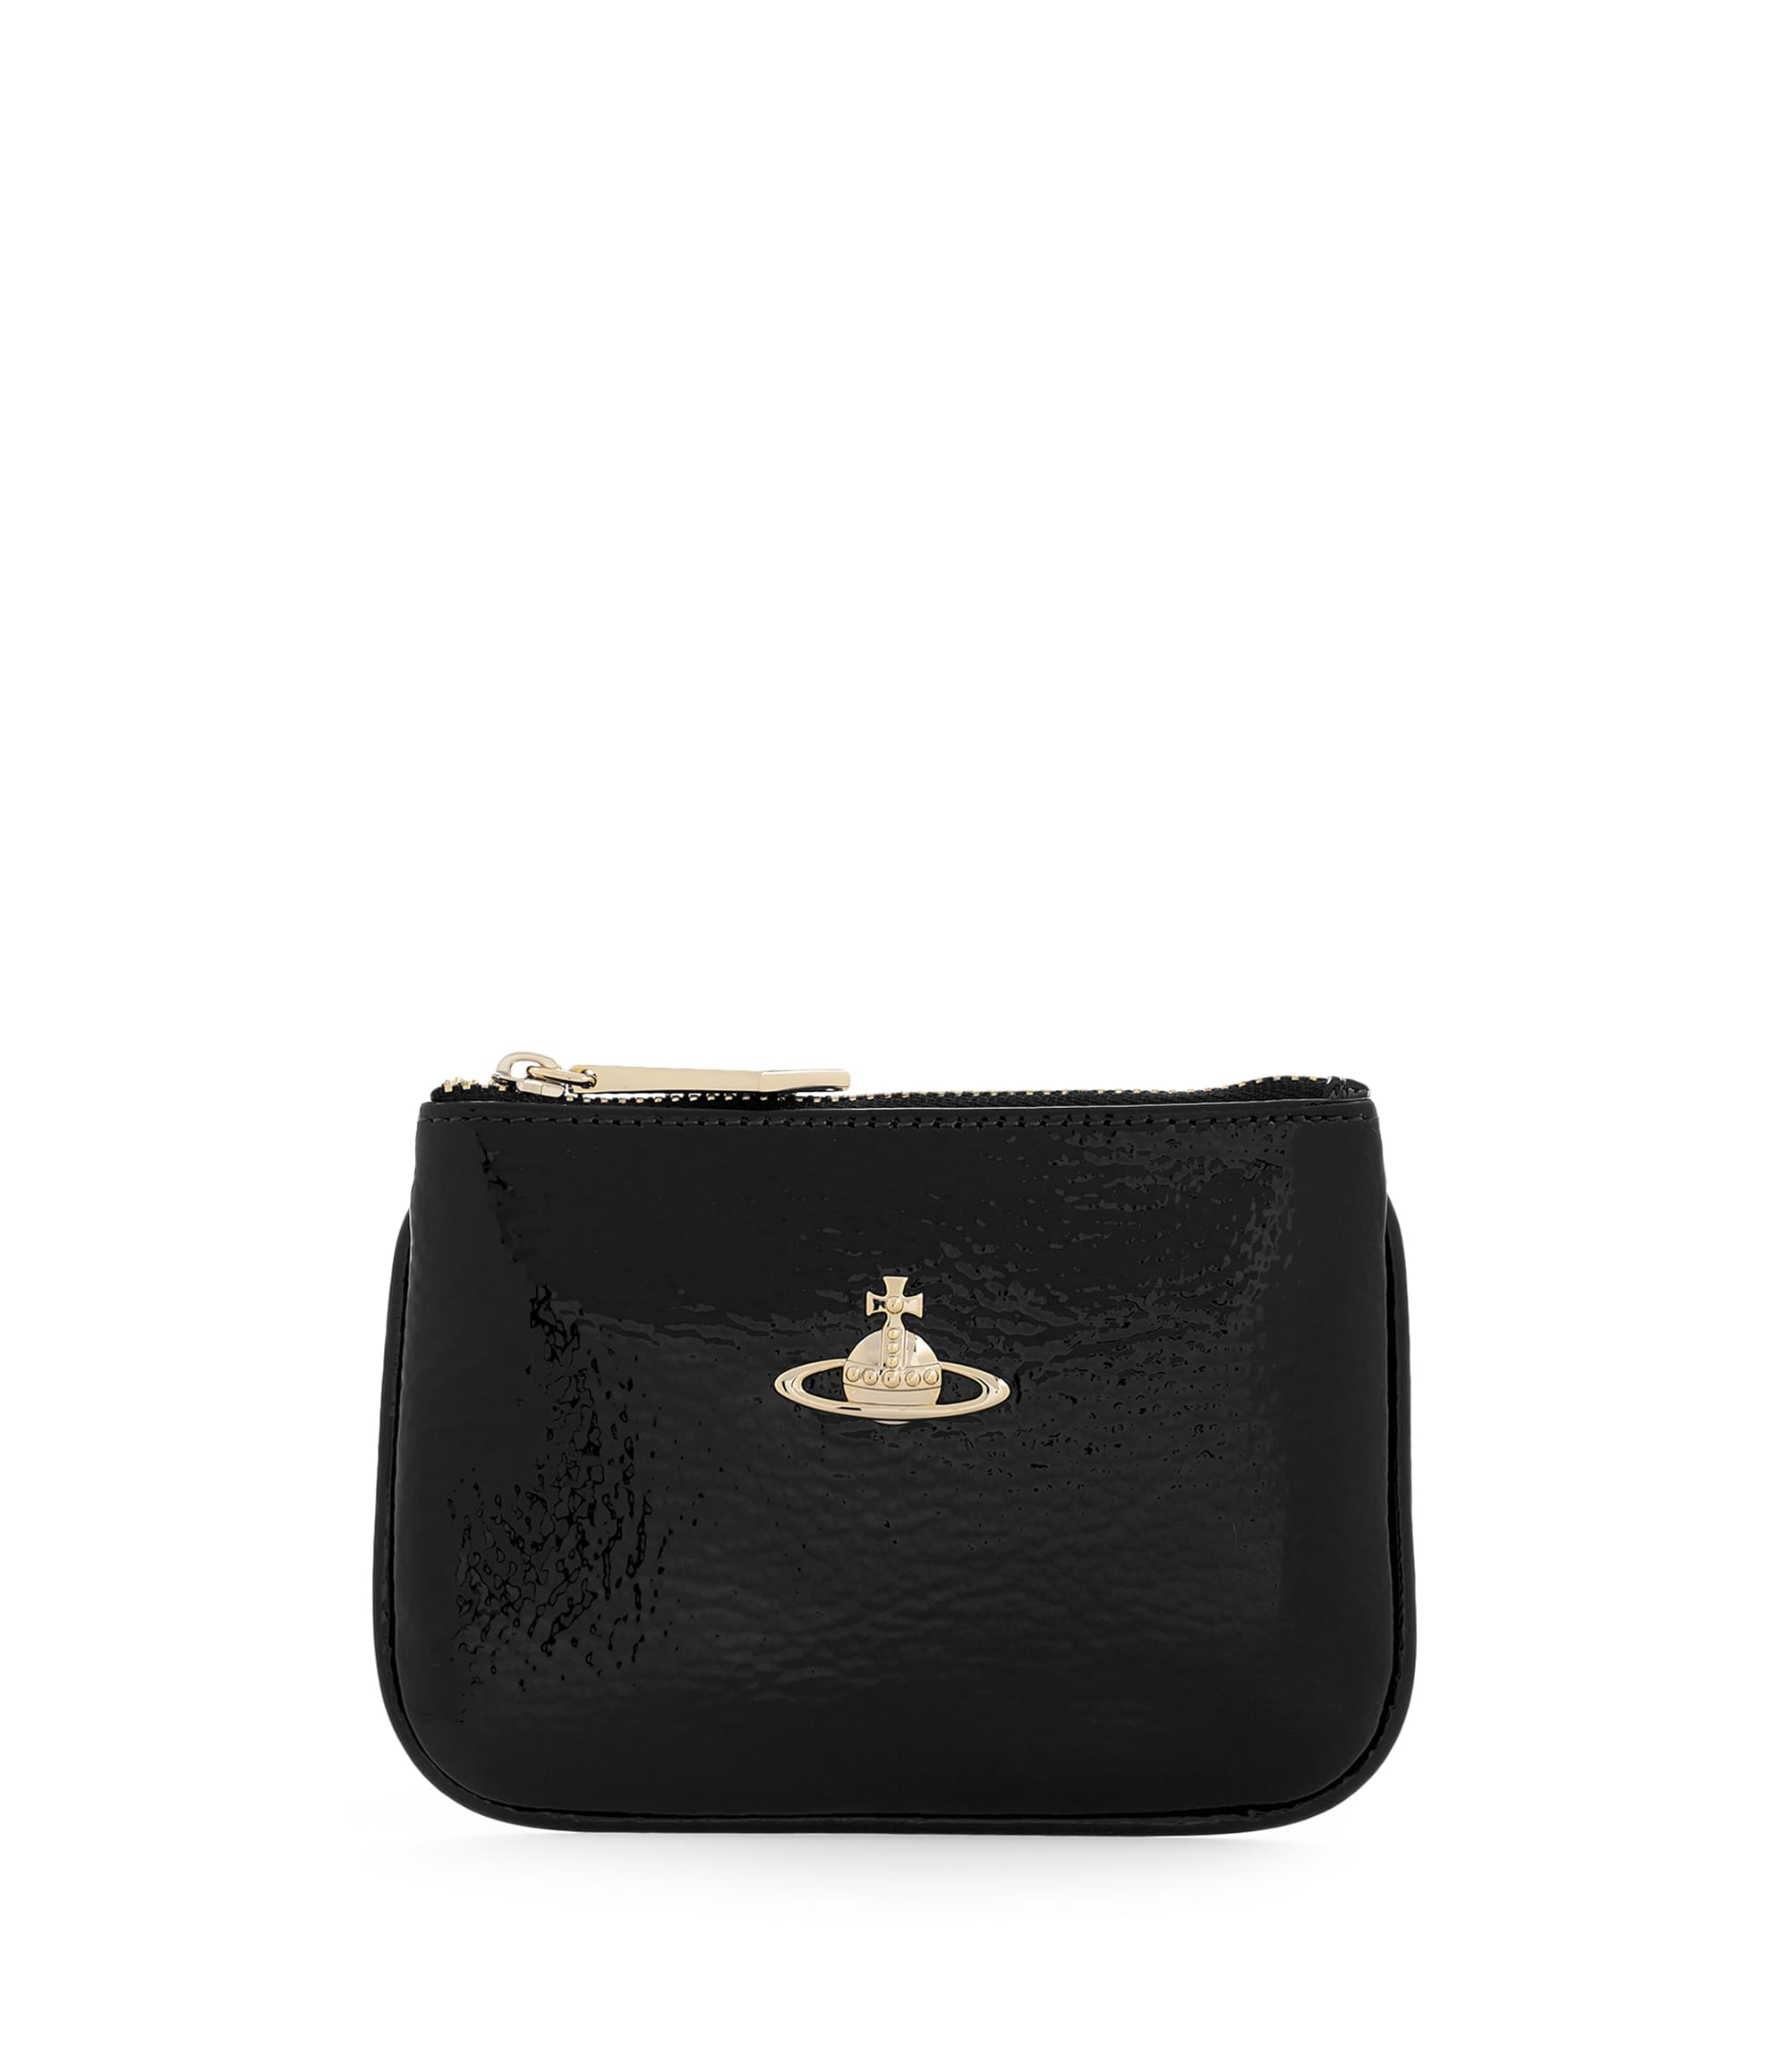 Vivienne Westwood Margate Wallet With Coin Pocket 51010007 Black